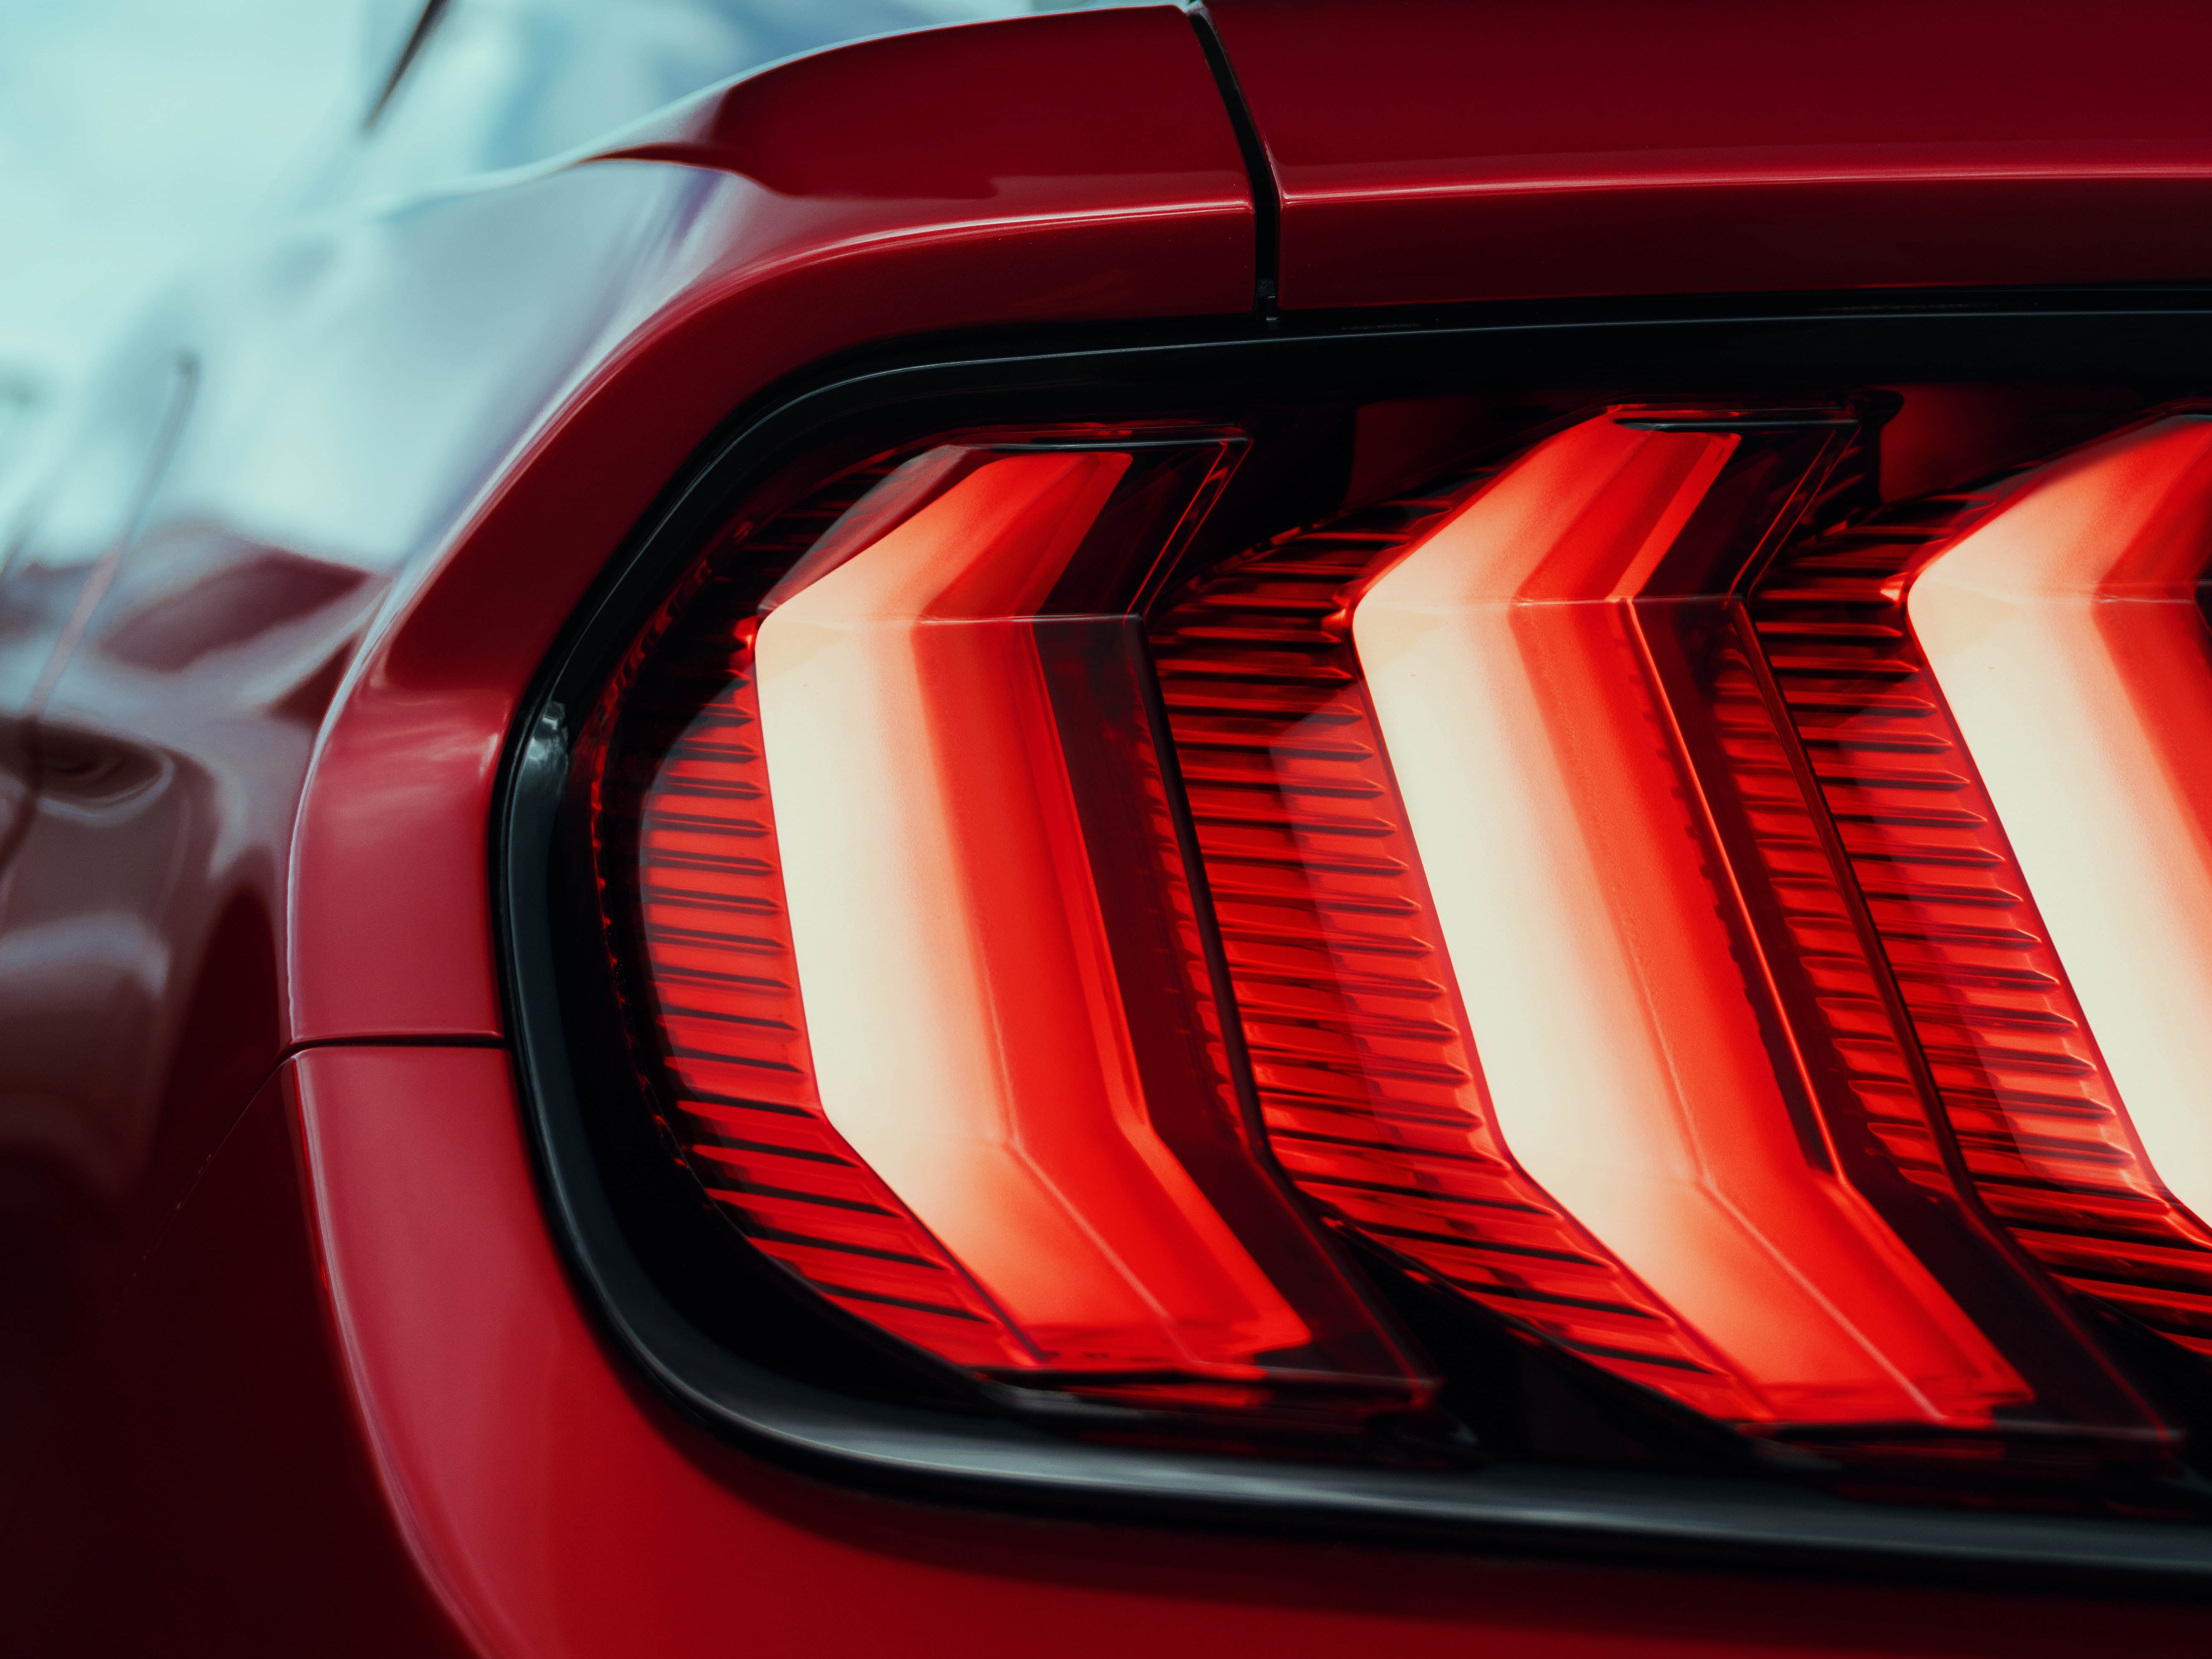 This is the tail light and triple blinker.